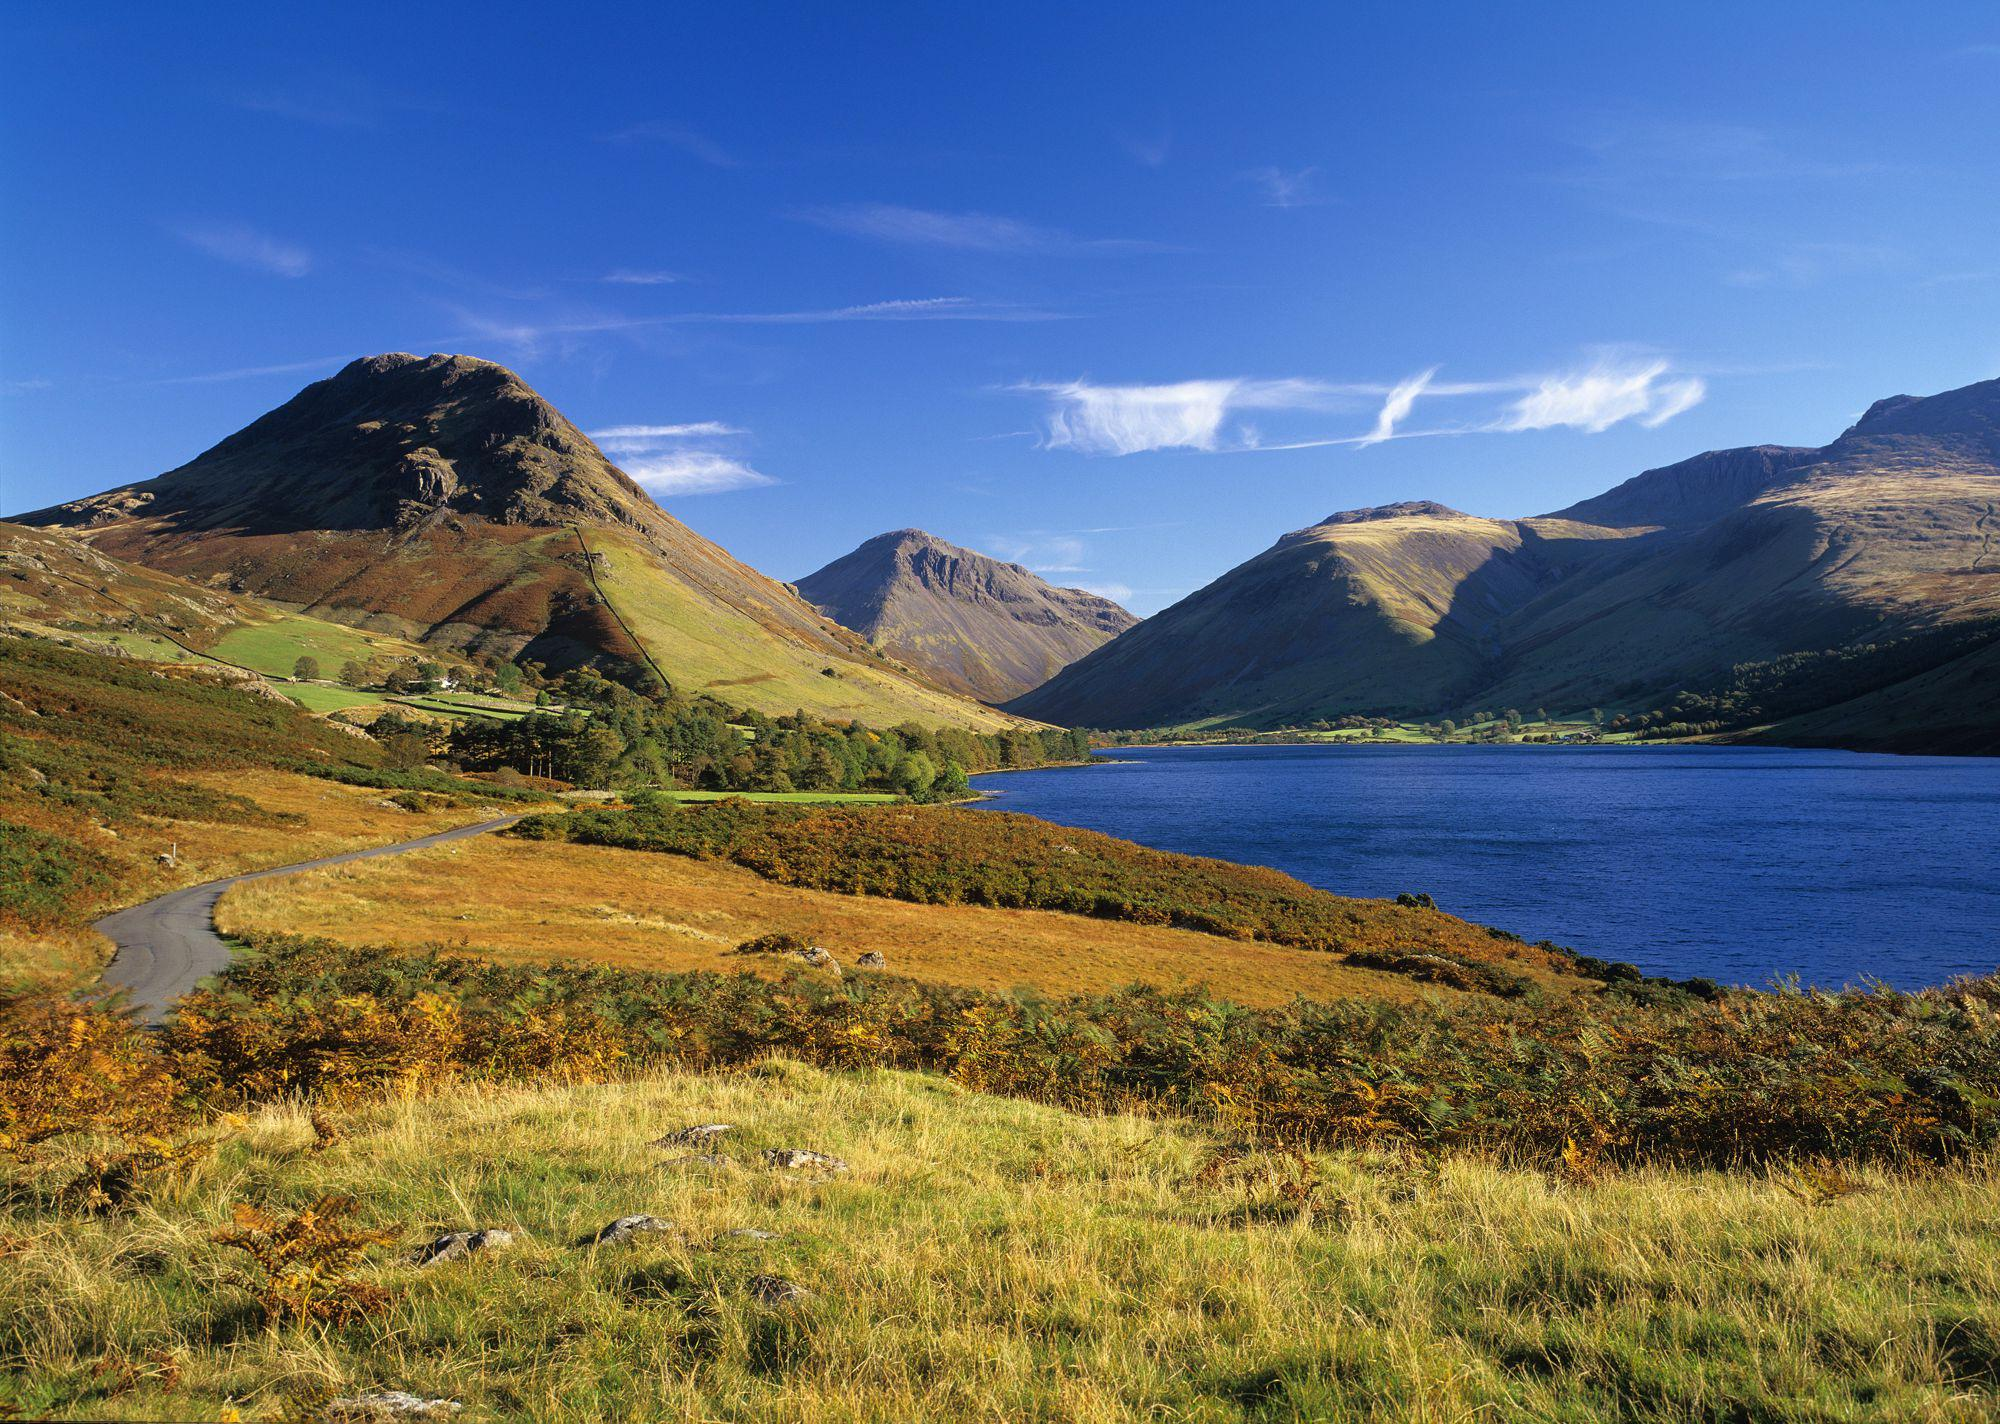 The Lake District National Park